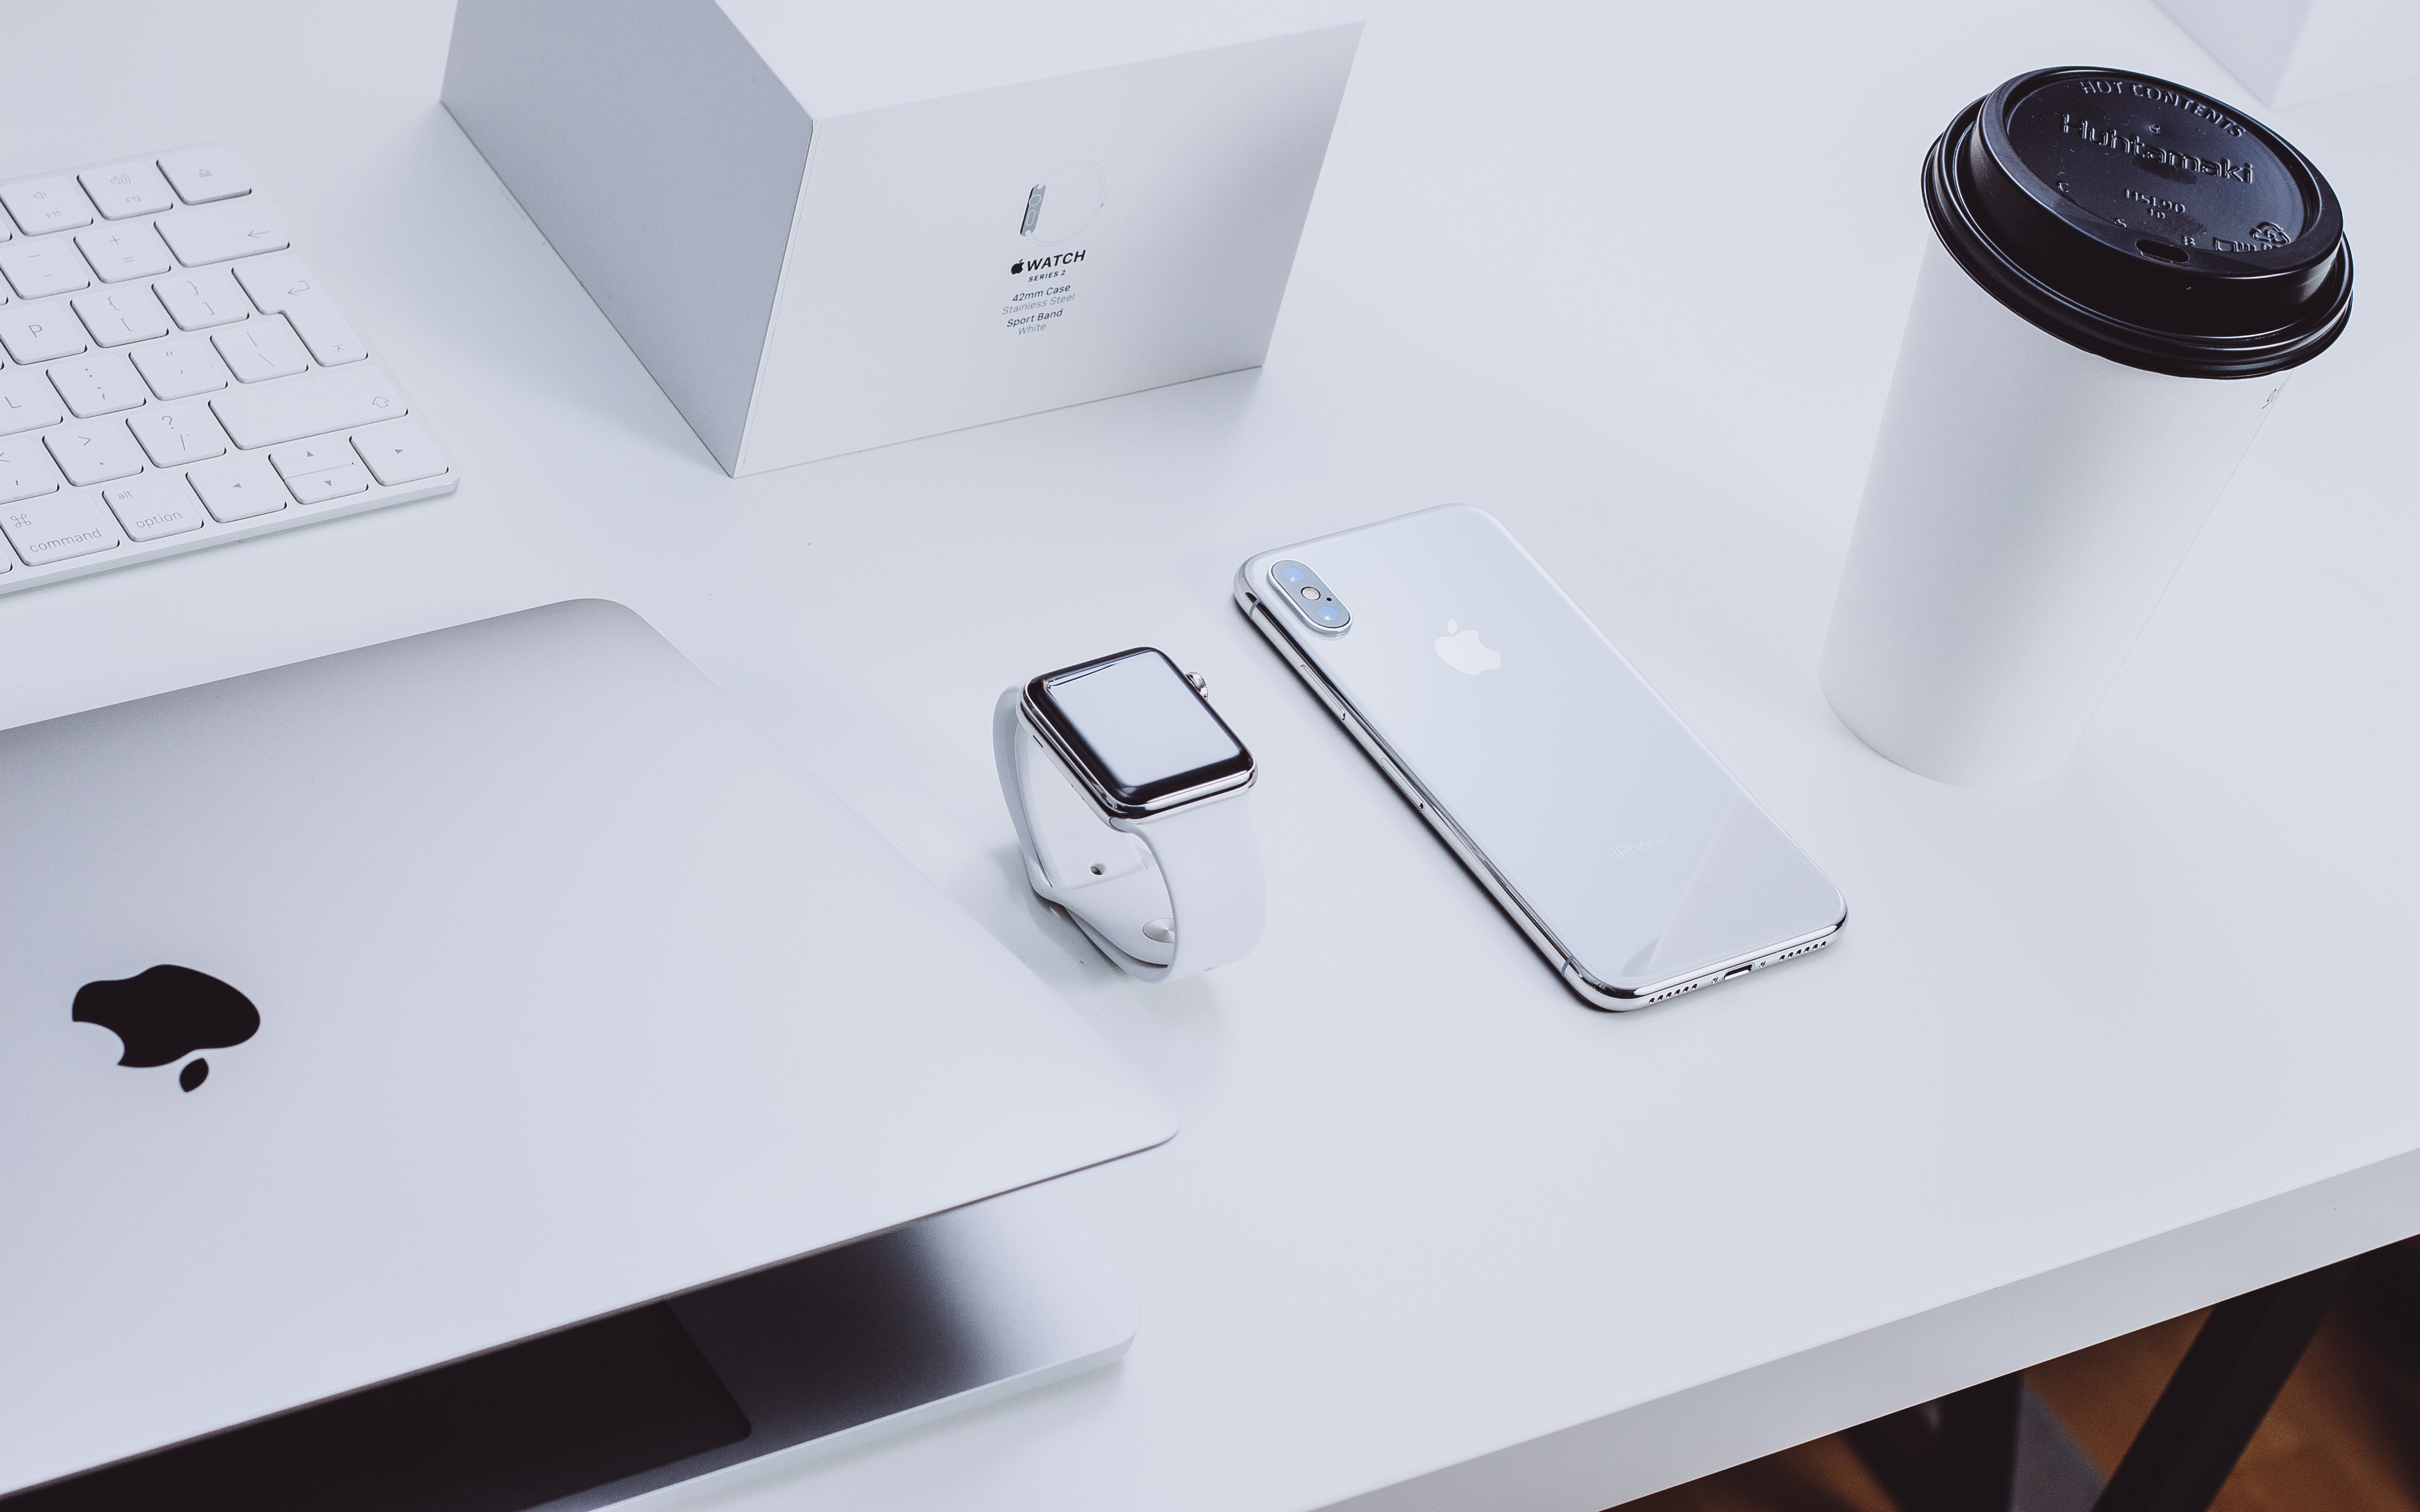 Apple products on a table